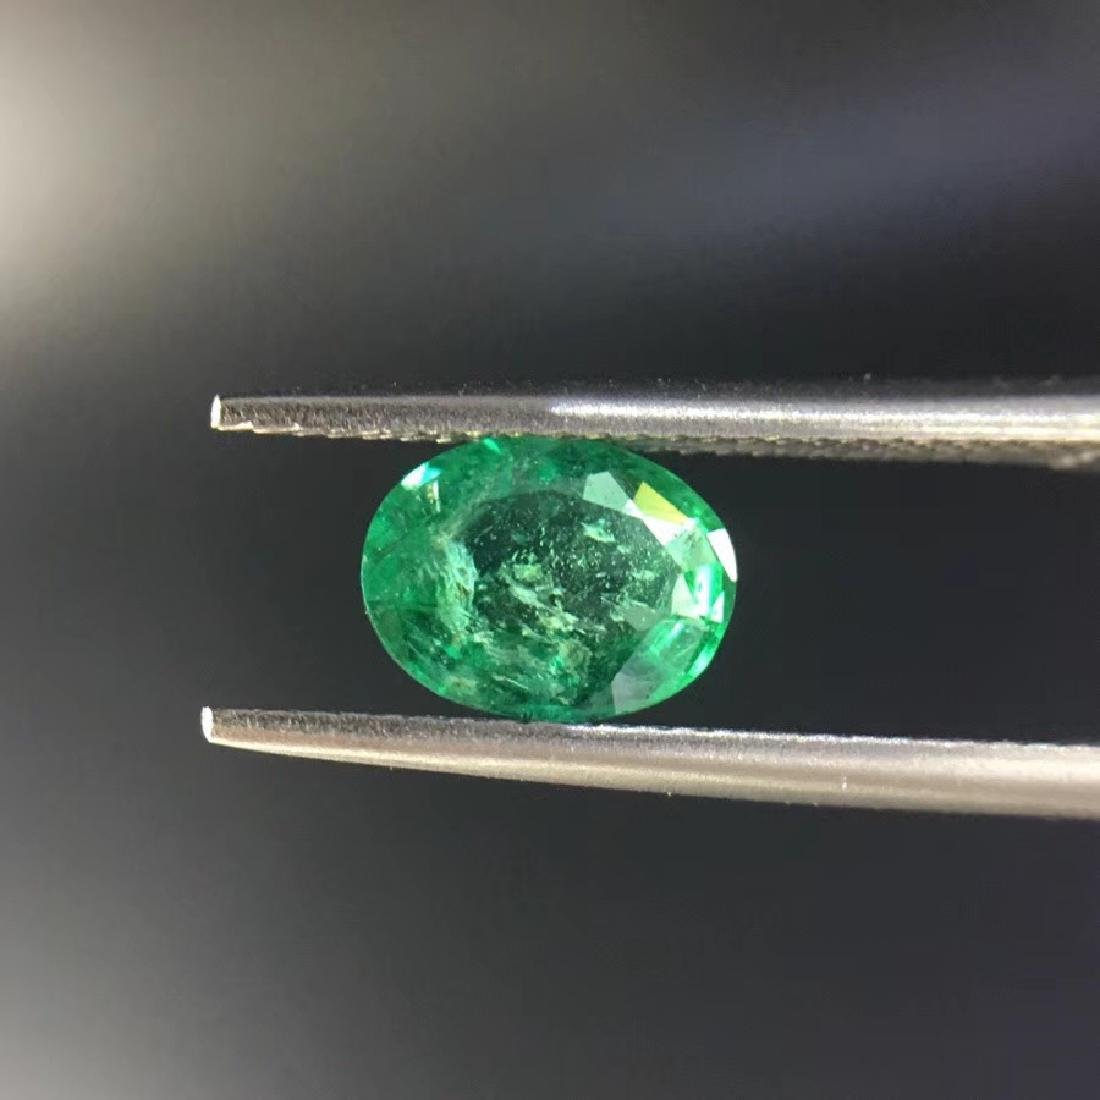 1.05 ct Emerald 6.0*7.8*3.2 mm Oval Cut